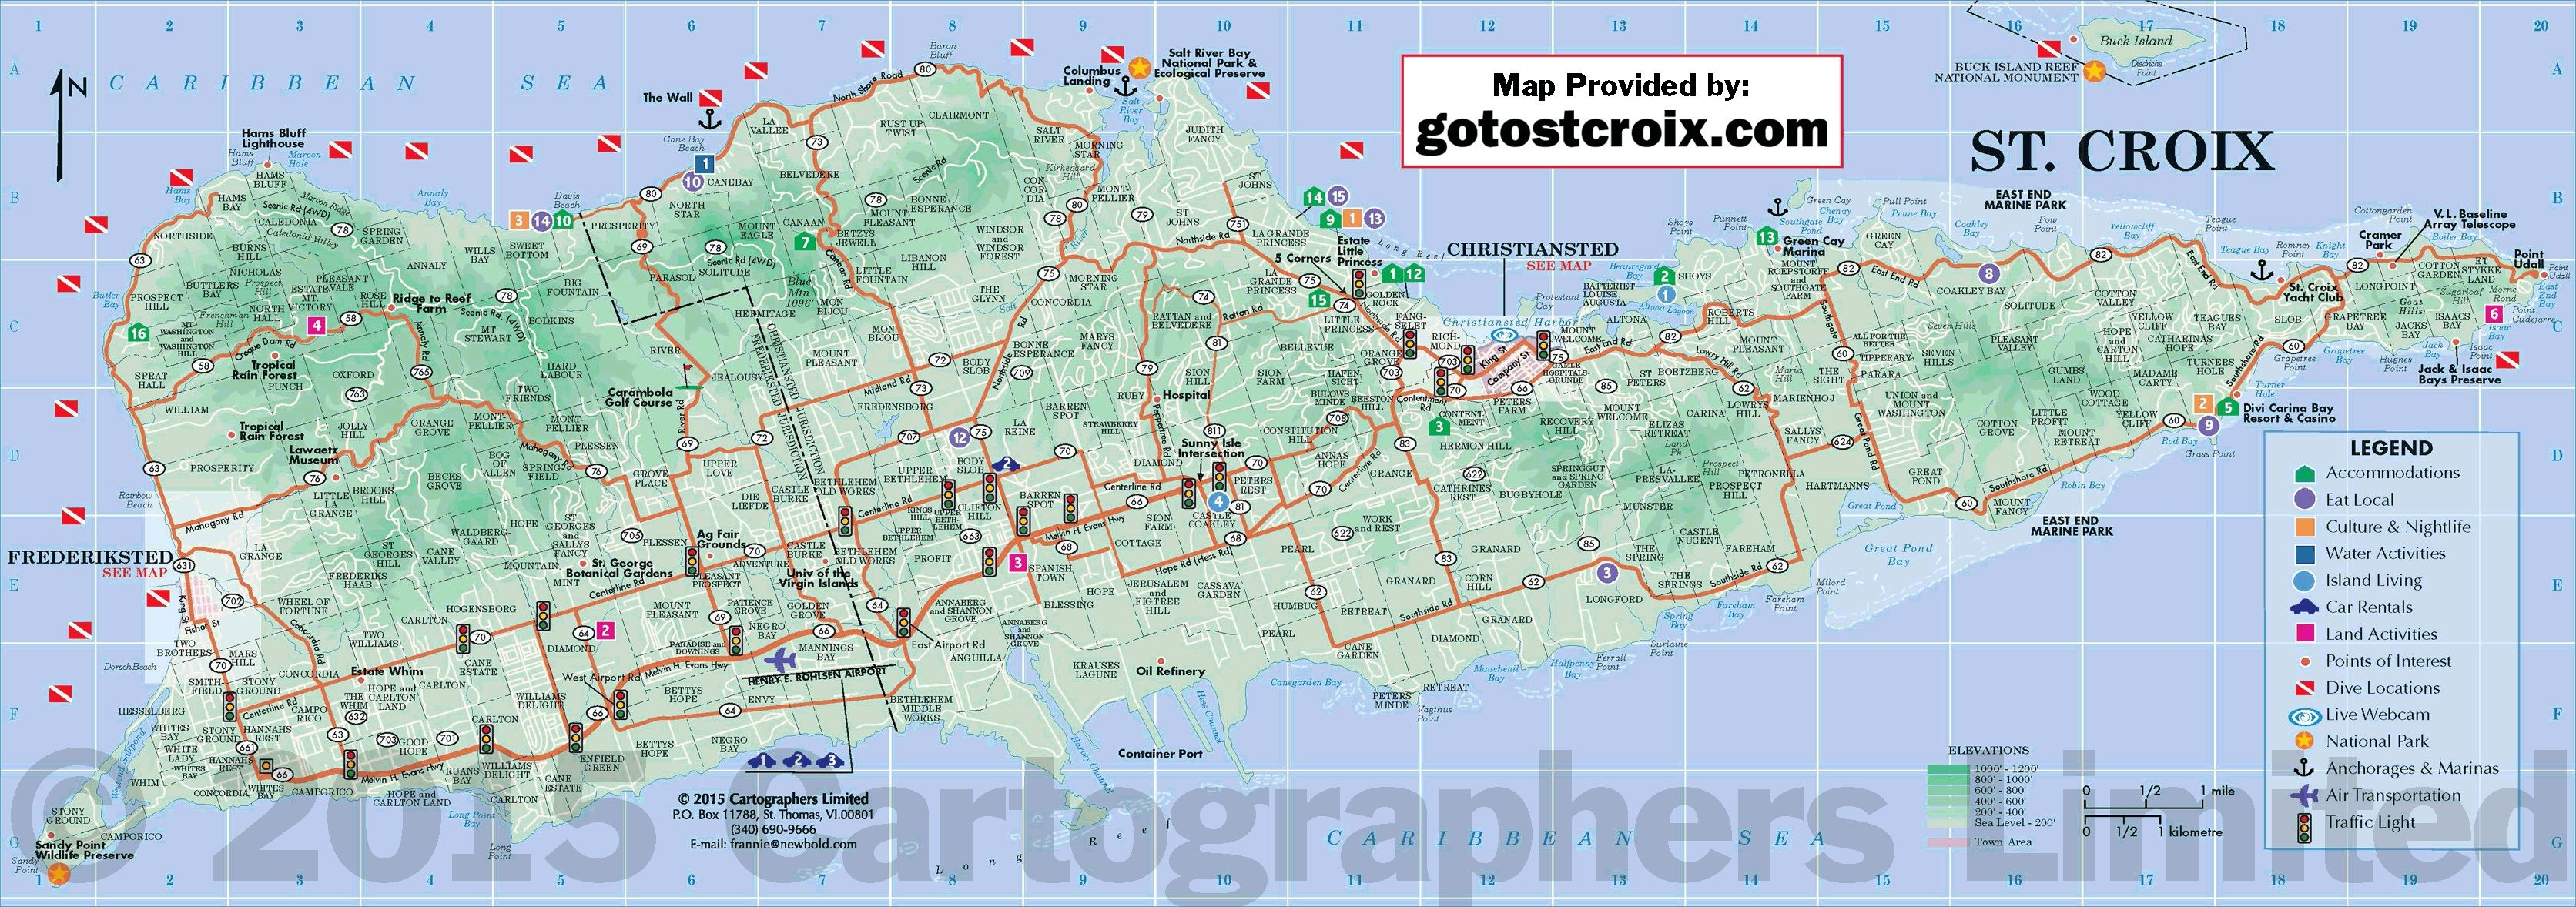 Pin by Villa Margarita St Croix on St Croix Map | Island map ...